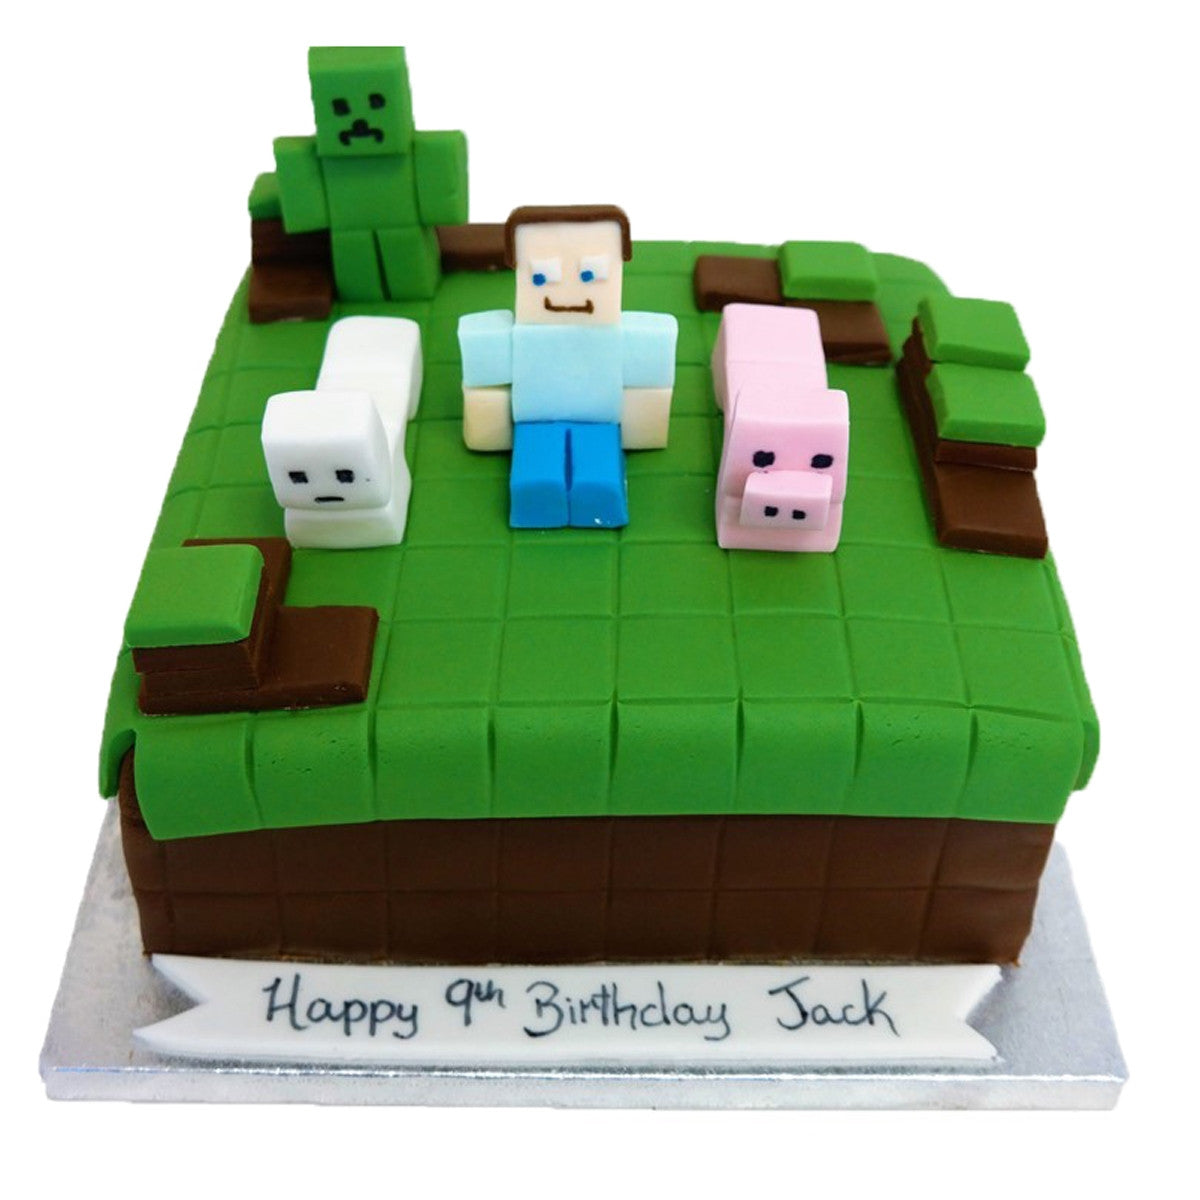 Awe Inspiring Minecraft Cake Buy Online Free Uk Delivery New Cakes Personalised Birthday Cards Sponlily Jamesorg